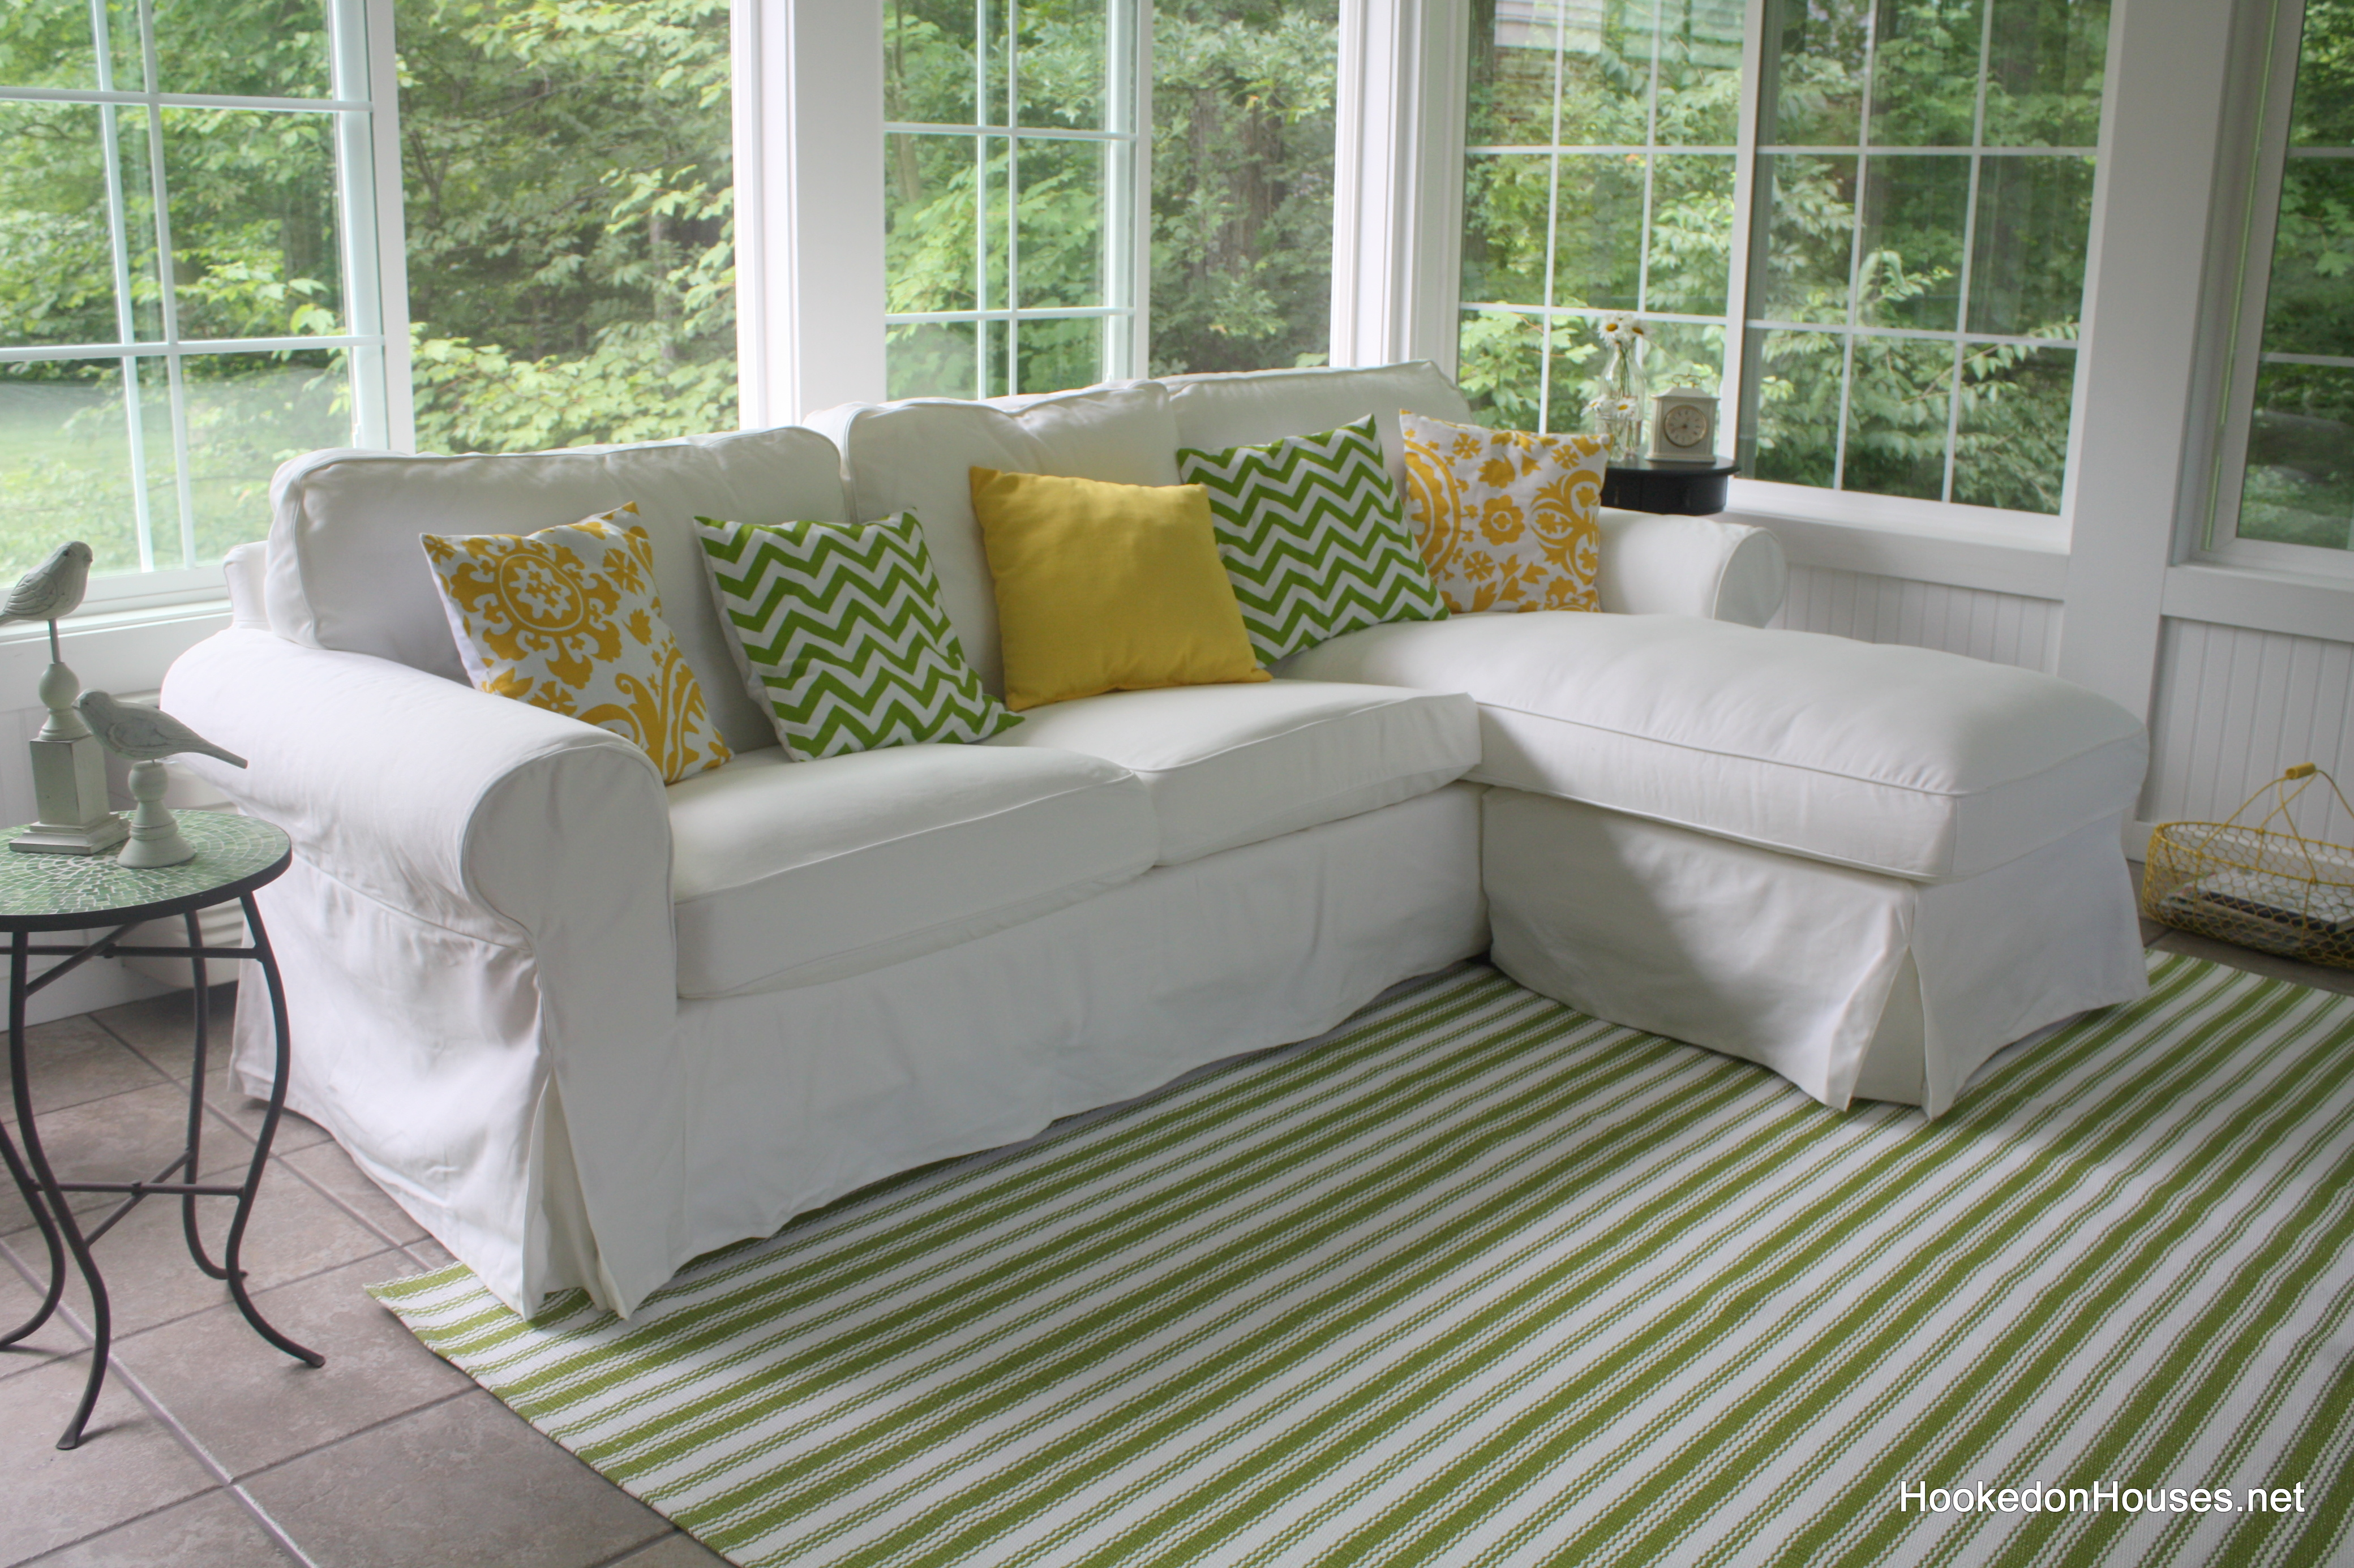 Sofa with rug 7 11 hooked on houses for Sofas clasicos y comodos